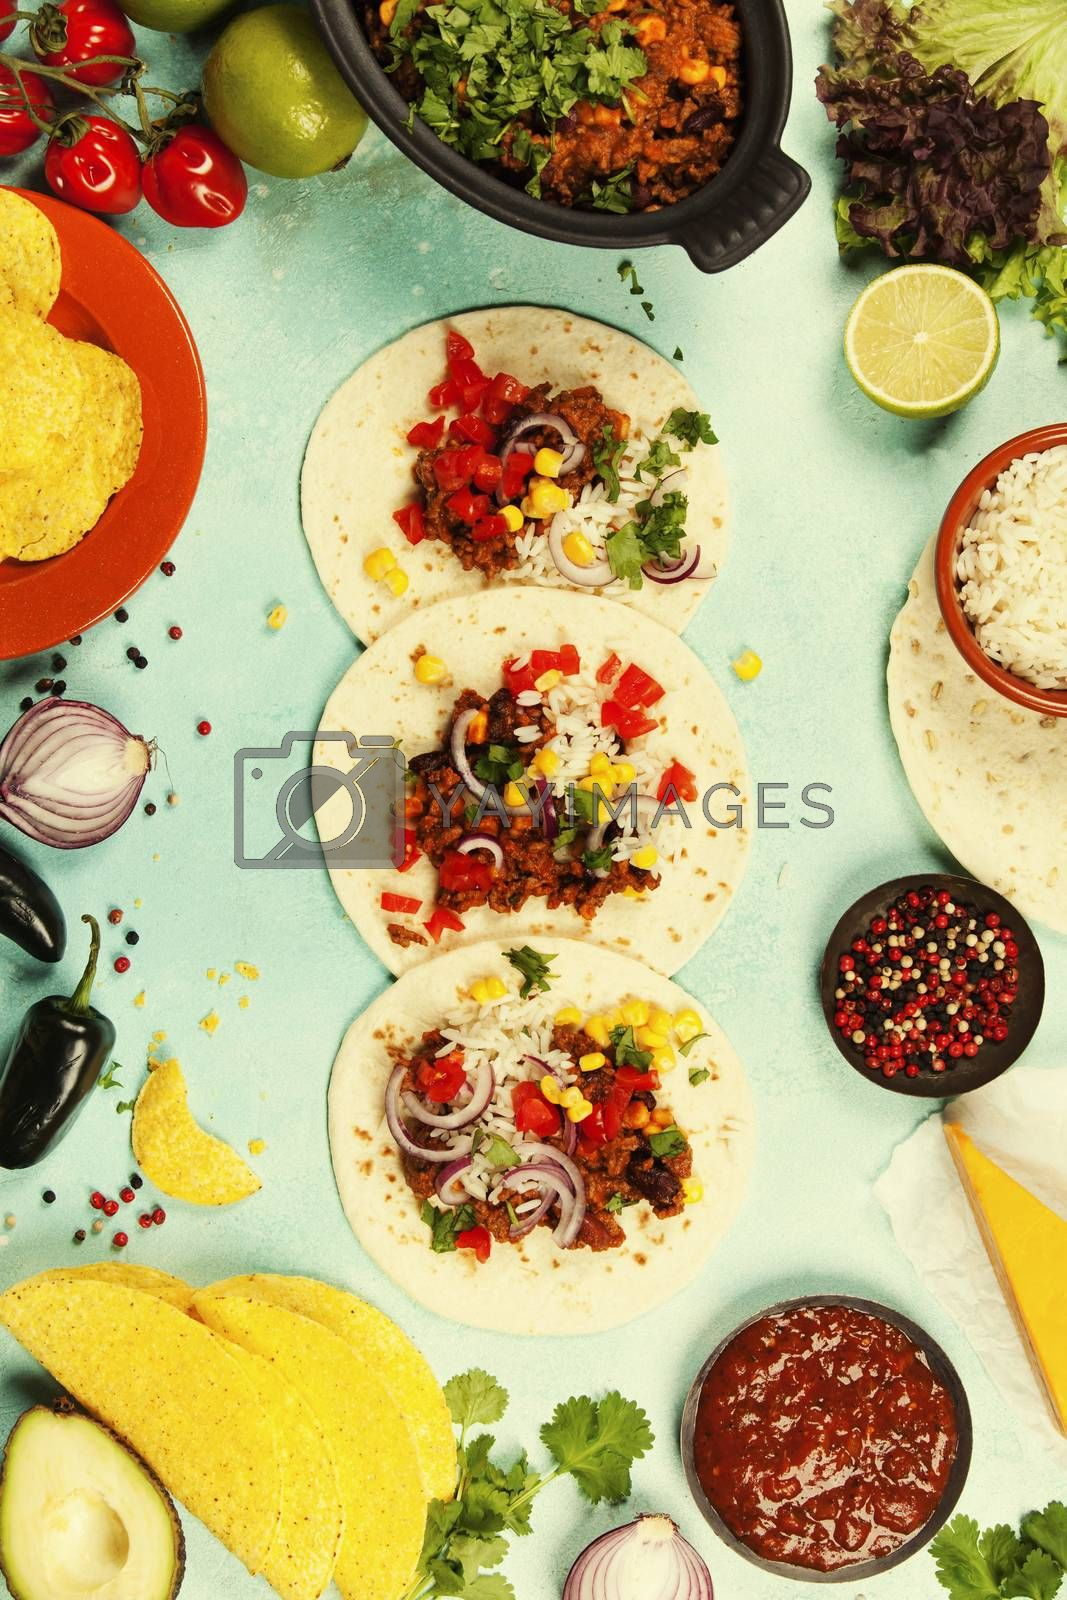 Mexican food concept: tortilla chips, guacamole, salsa, chili with beans and fresh ingredients over vintage background. Top view